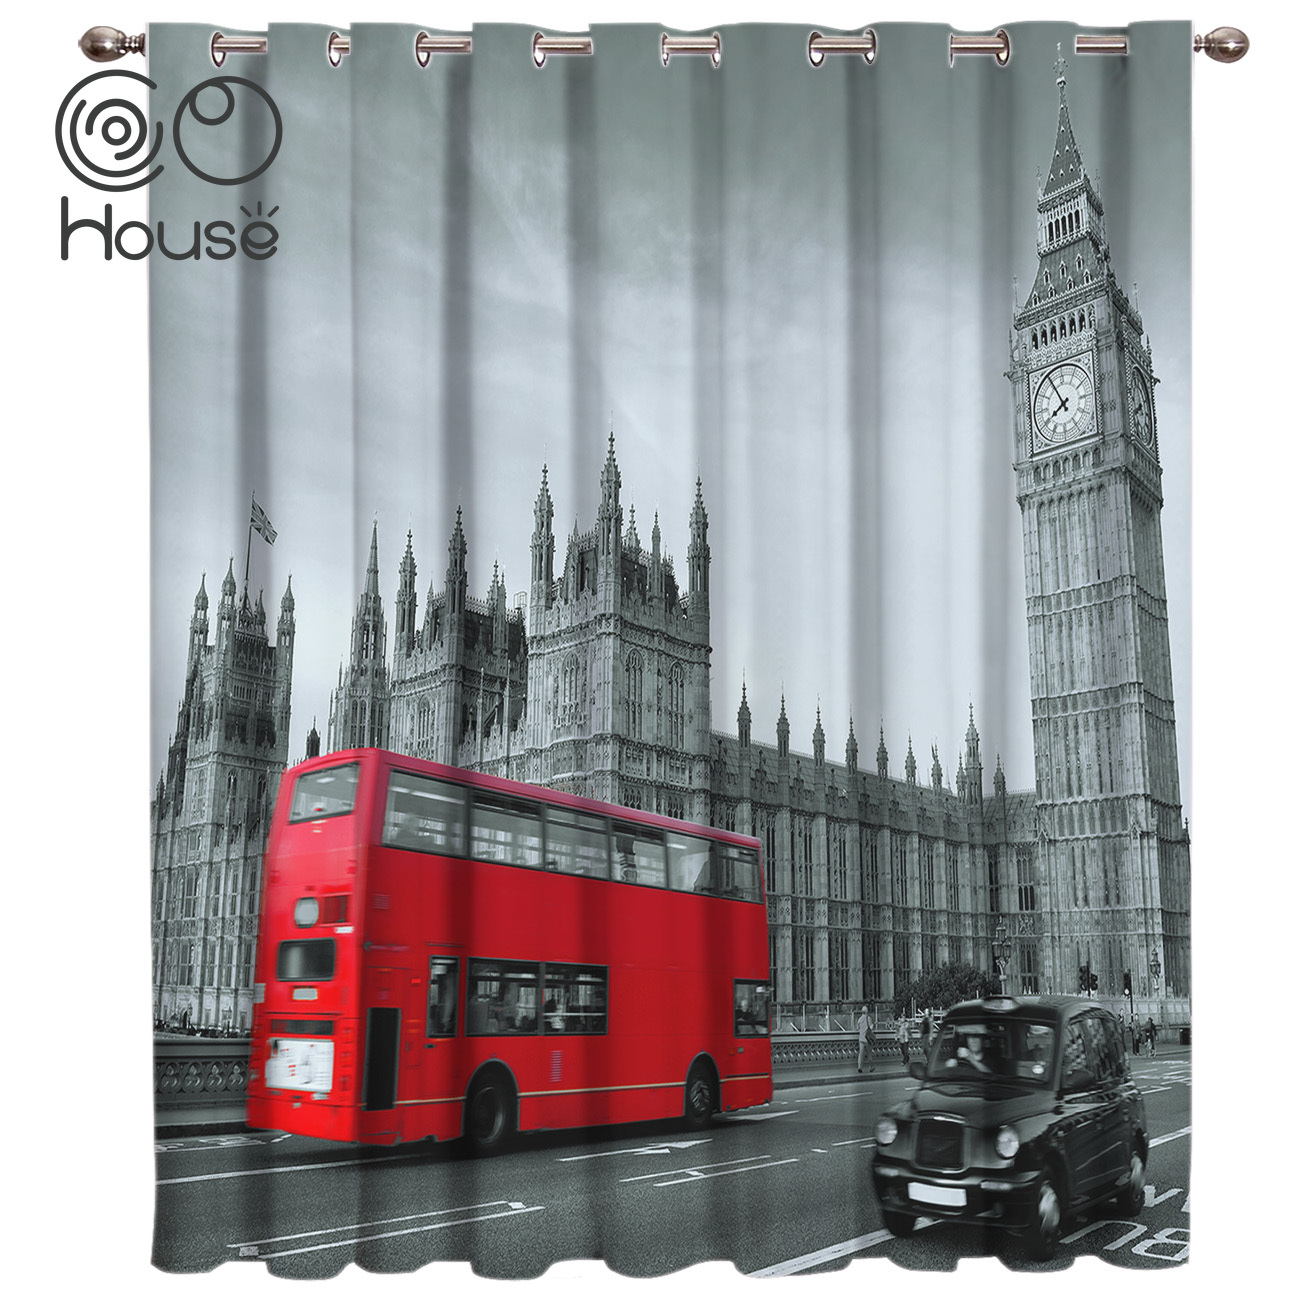 COCOHouse London Bus Bell Tower Window Treatments Curtains Valance Living Room Blackout Curtains Outdoor Indoor Decor Curtain